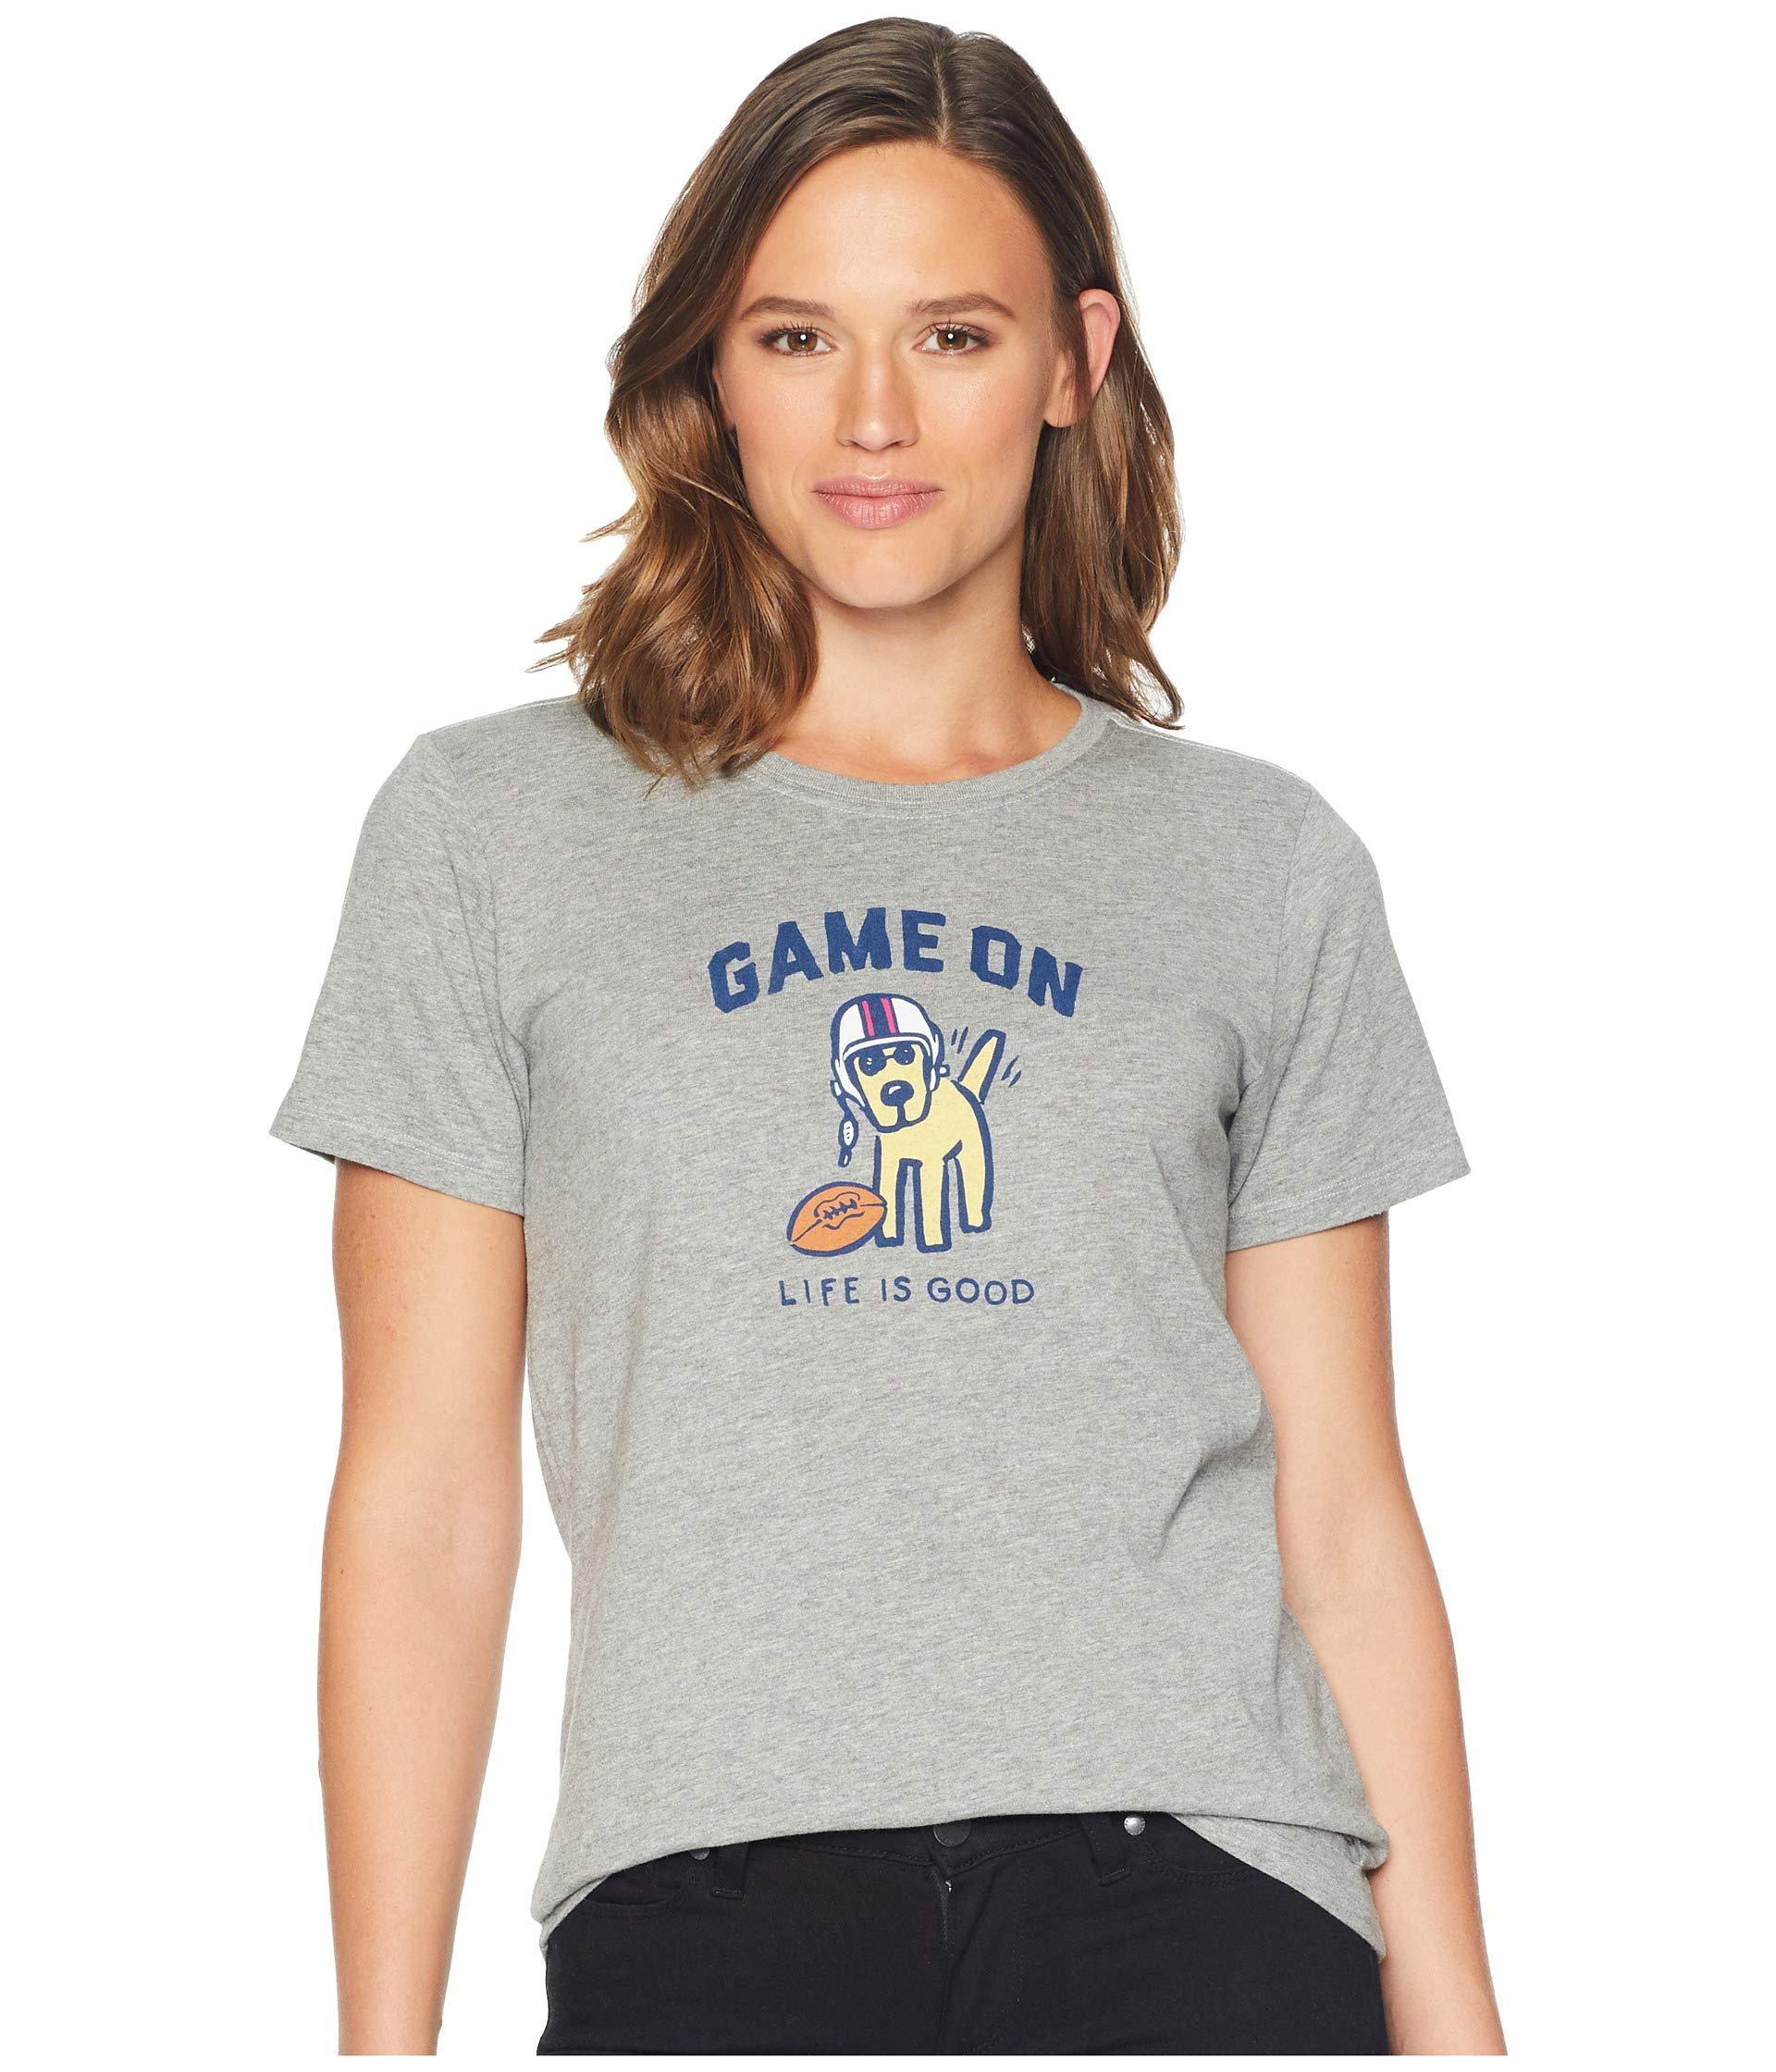 e27dc66cbc1 Lyst - Life Is Good. Game On Rocket Crusher T-shirt (heather Gray ...